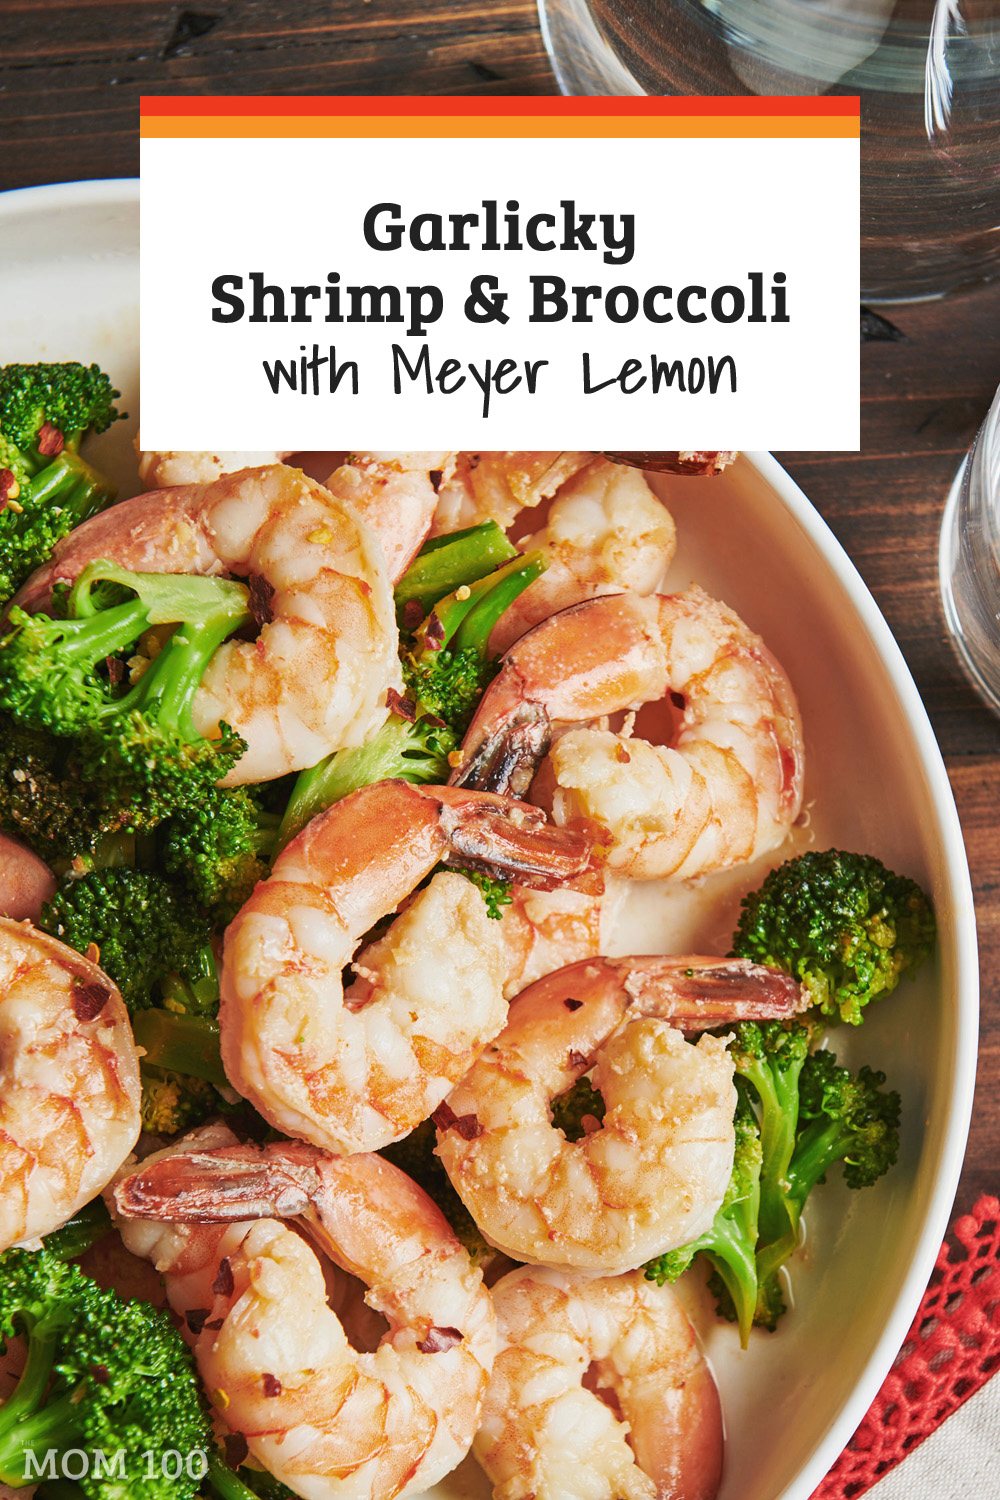 Garlicky Shrimp and Broccoli with Meyer Lemon is a delicious and perfect last-minute (15 mins to the table!) dinner. Serve it with hot rice, quinoa, or pasta.